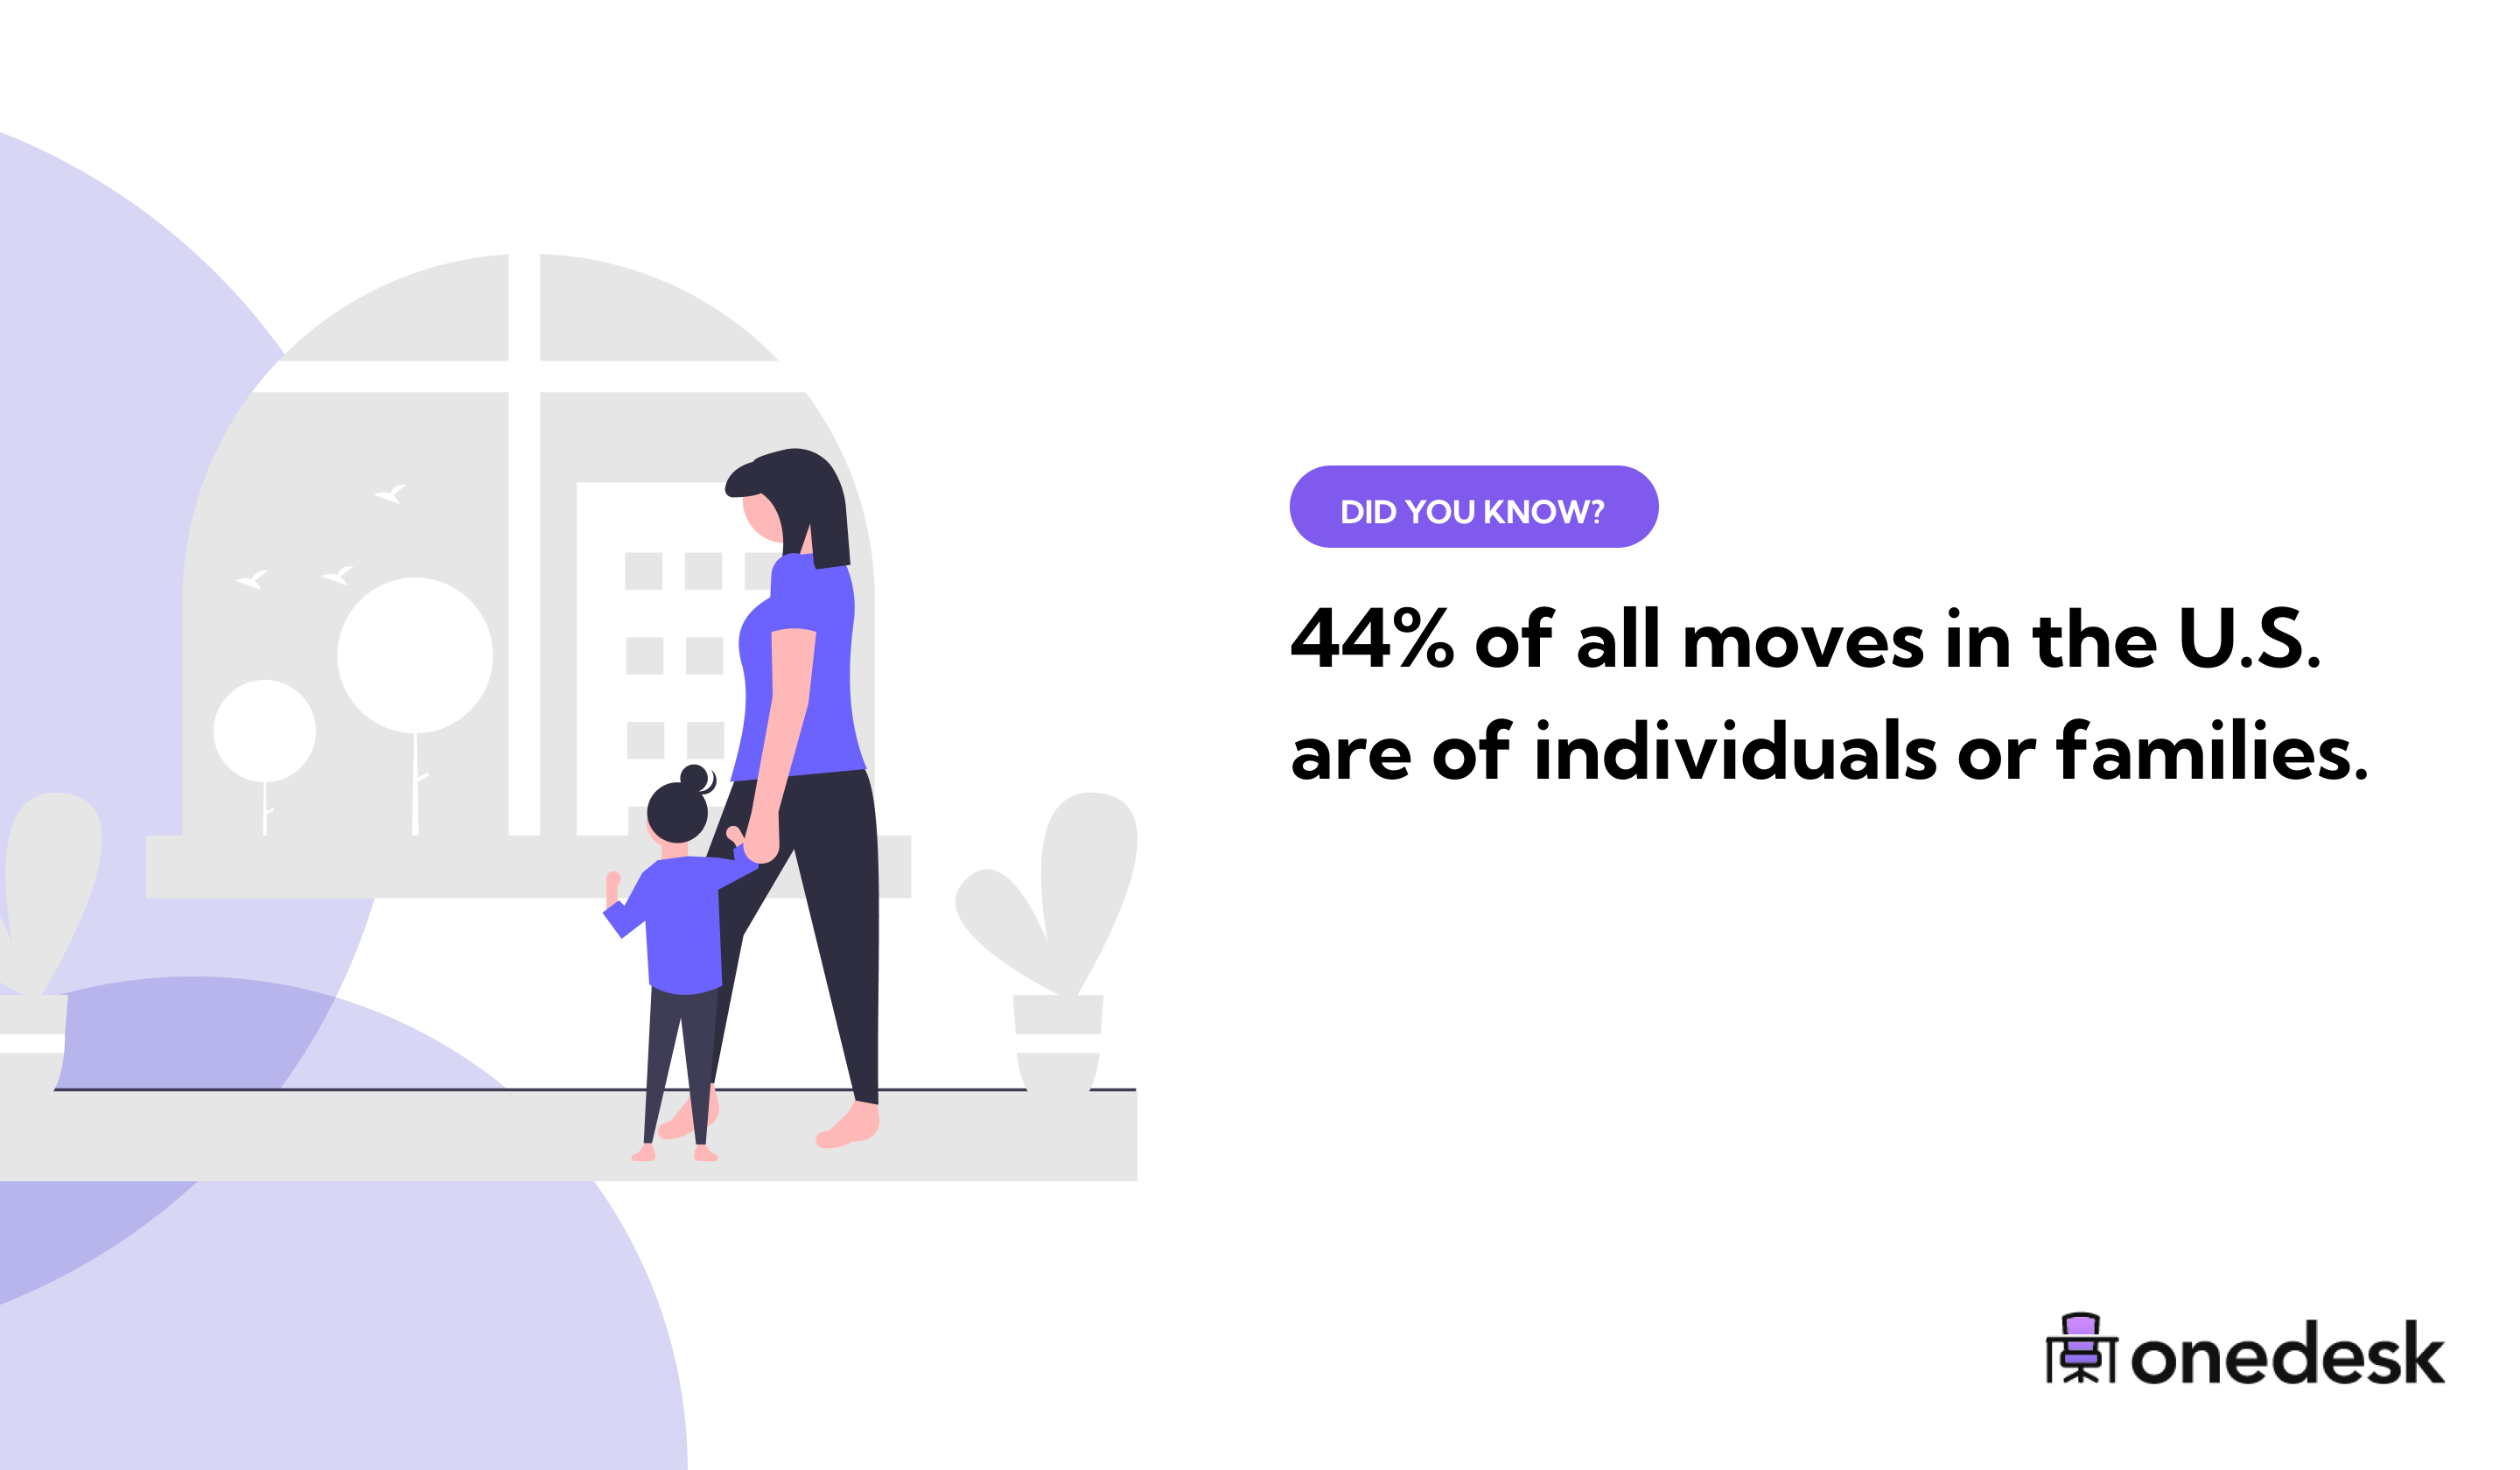 44% of all moves in the U.S. are of individuals or families